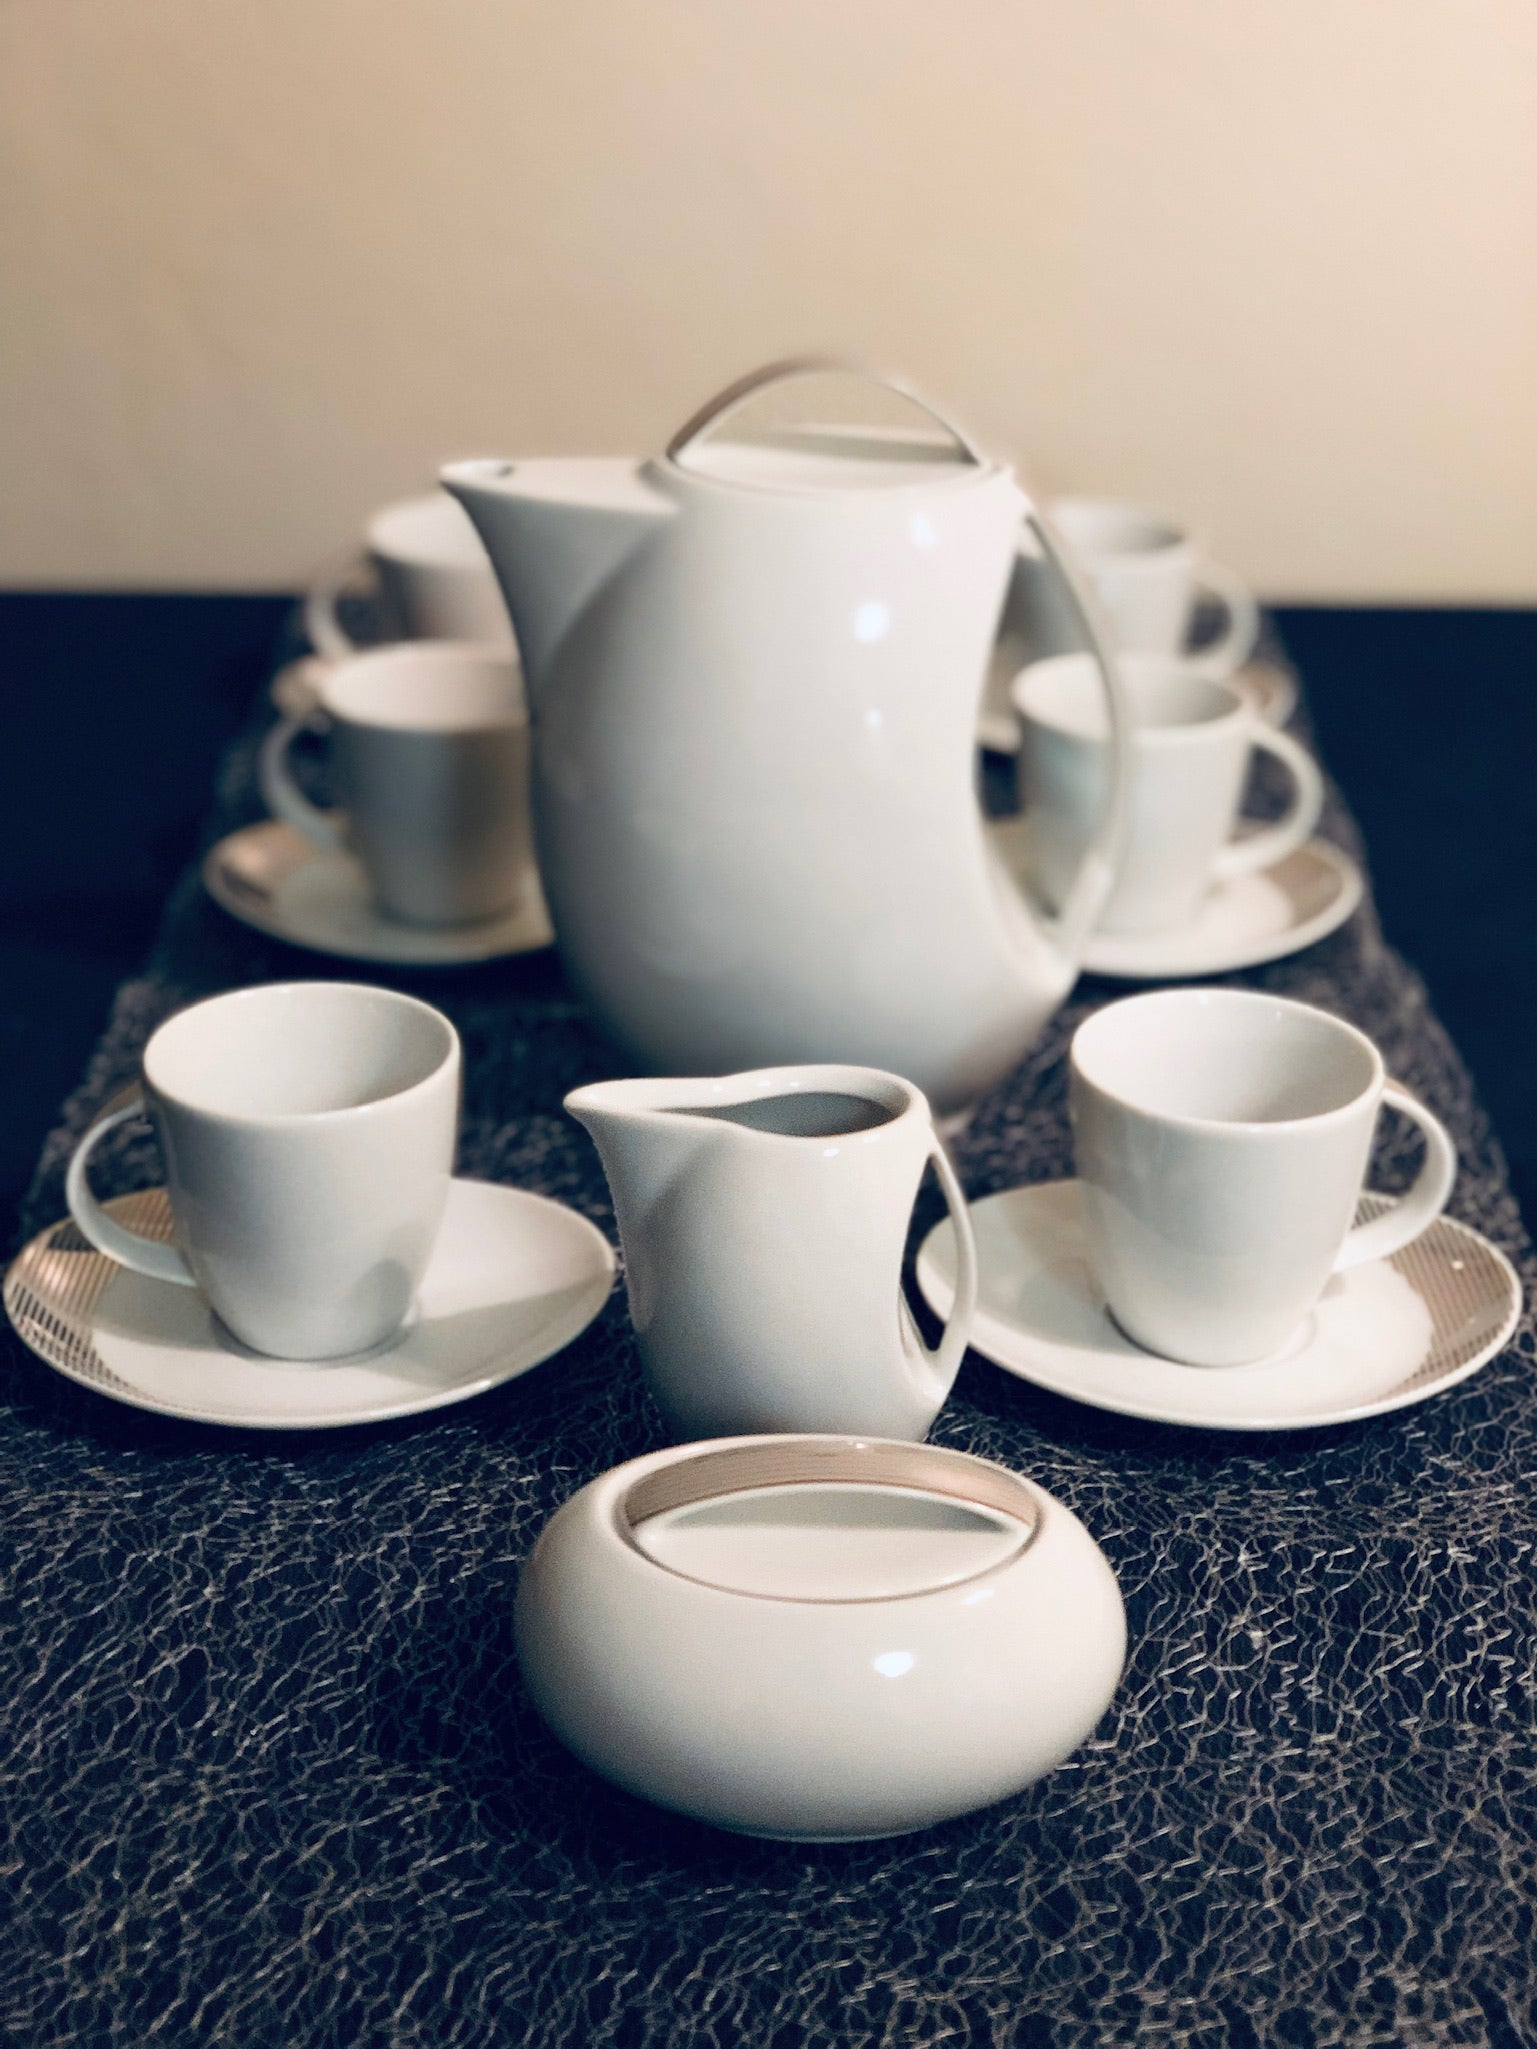 Coffee set made out of high-quality porcelain